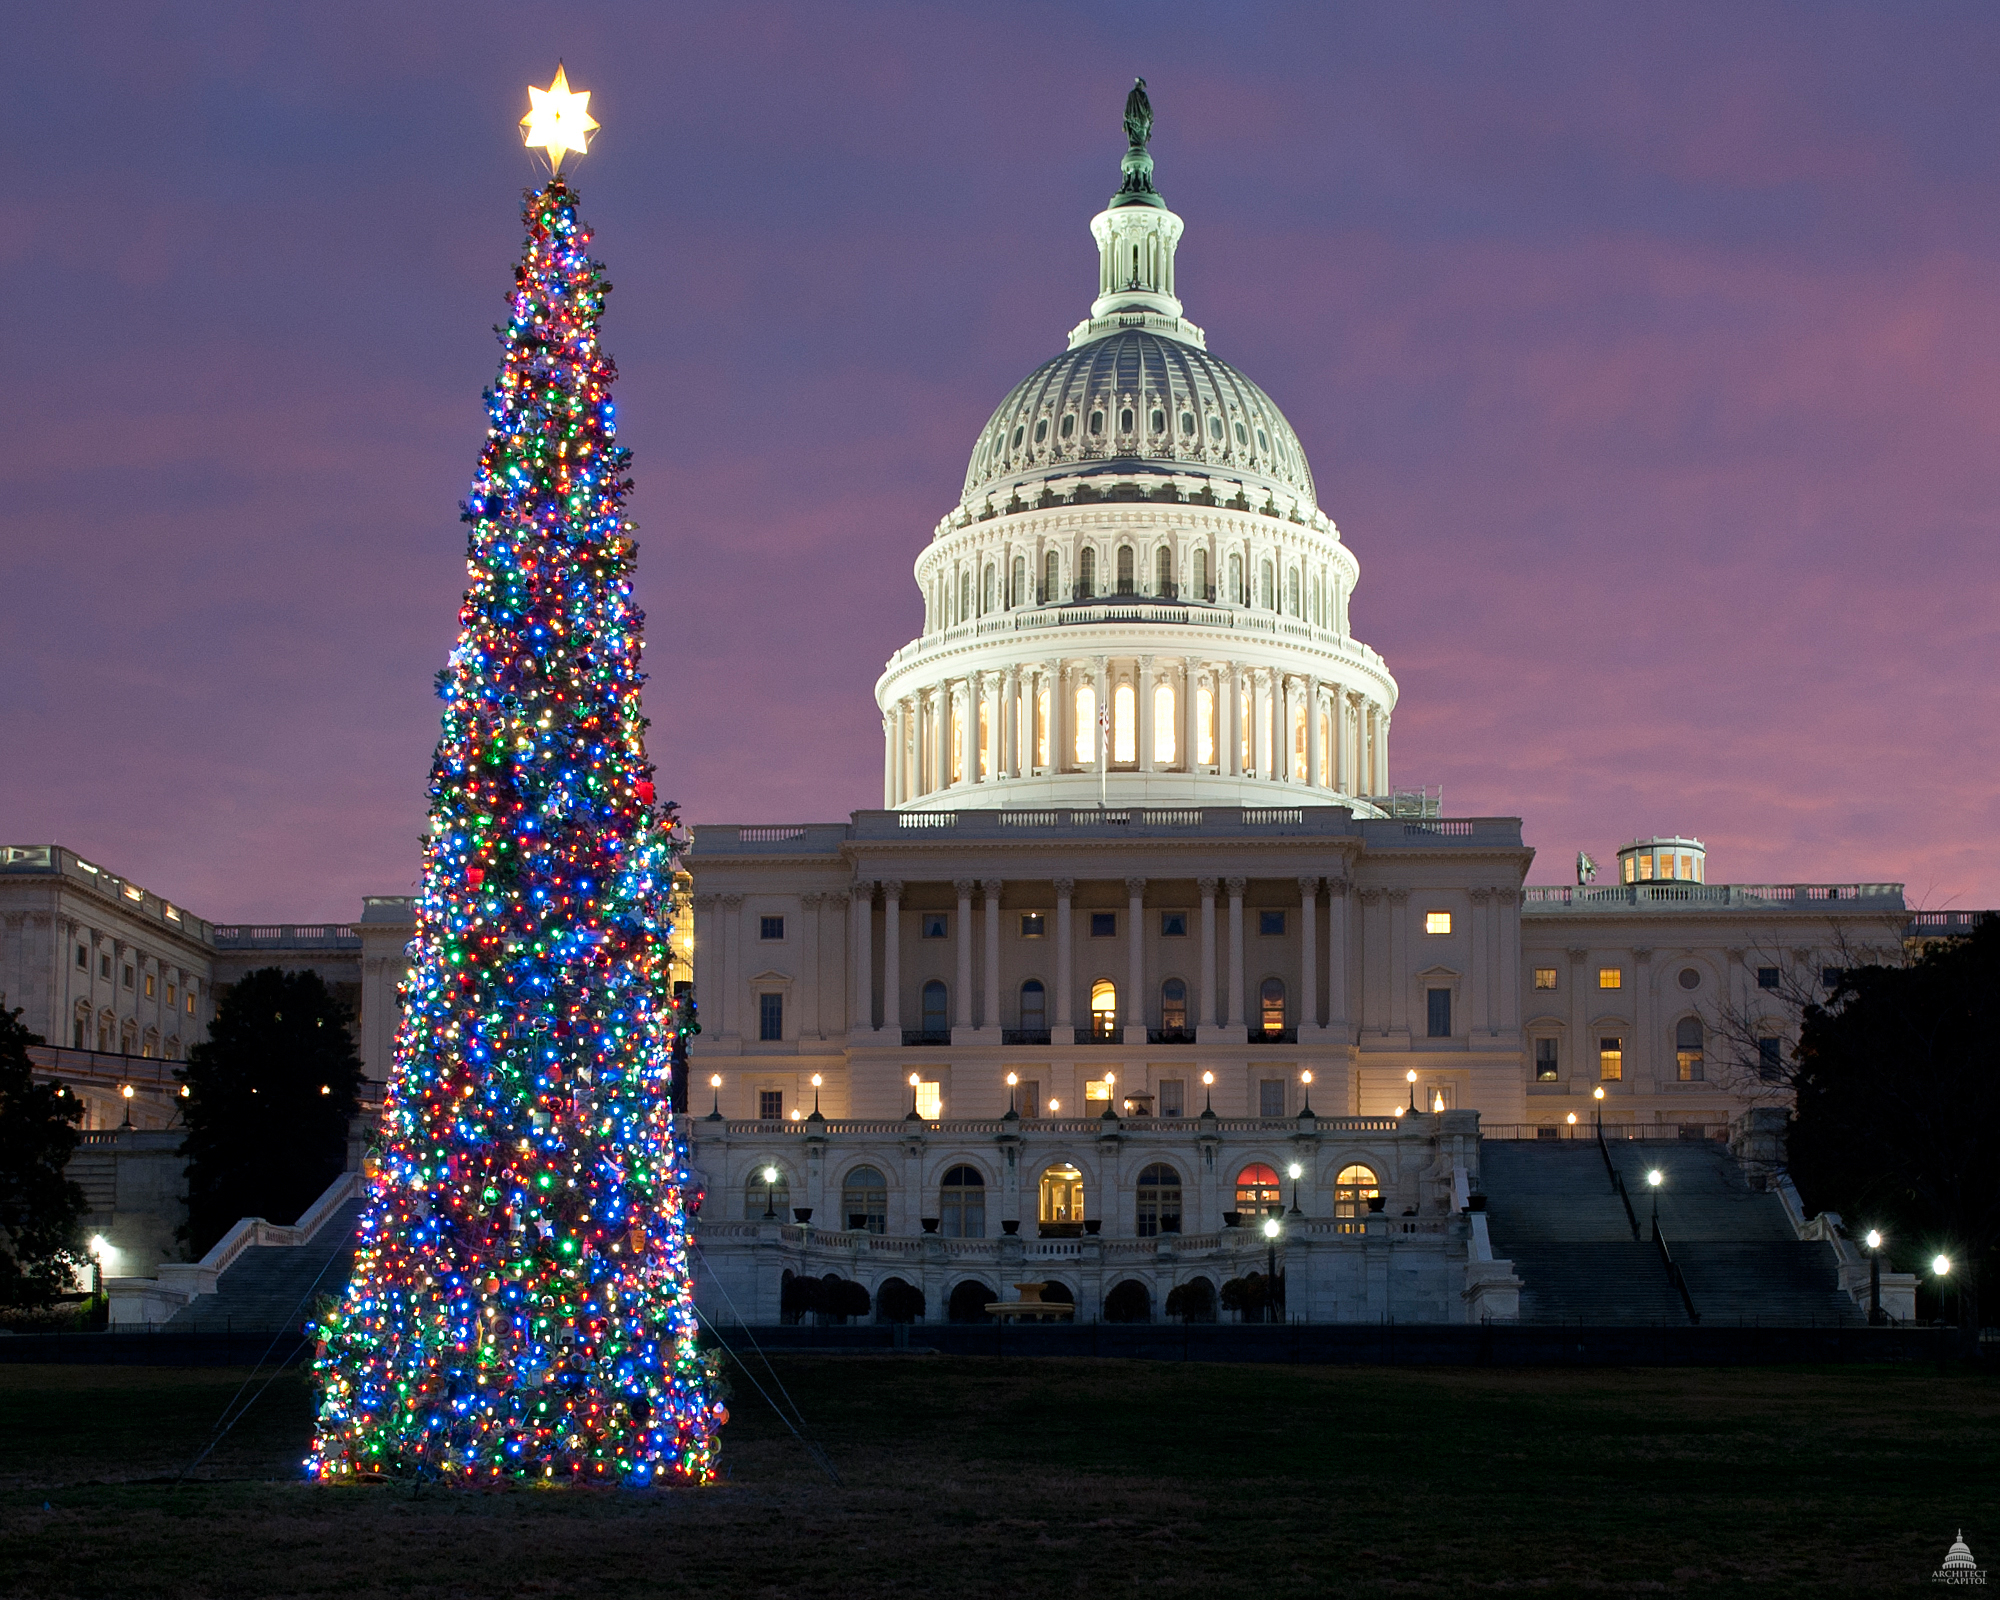 The 2011 Capitol Christmas Tree (Architect of the Capitol)